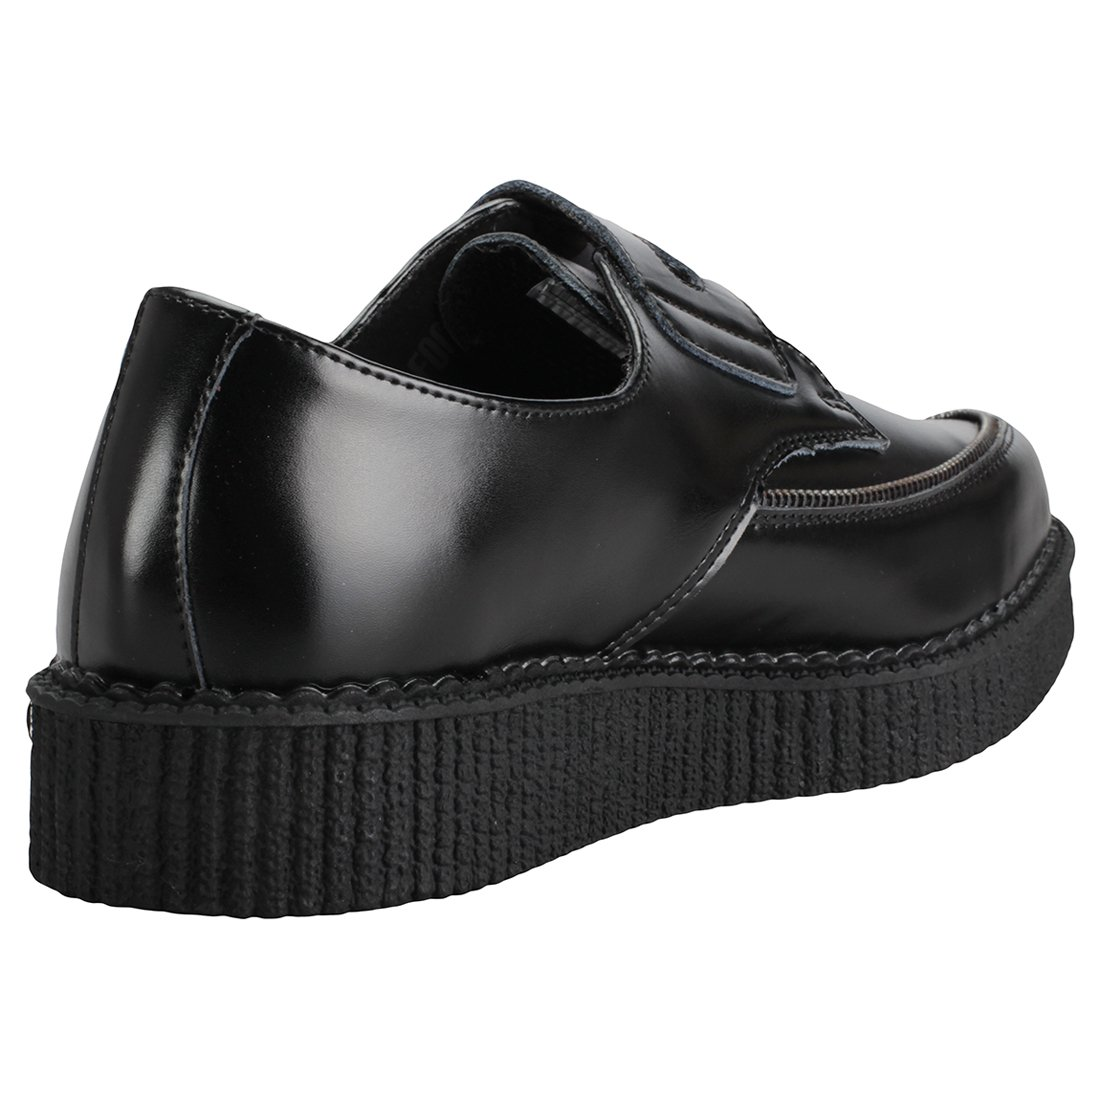 T.U.K. Pierced Zipper Pierced T.U.K. Pointed Creeper Herren Schuhe 9783c7